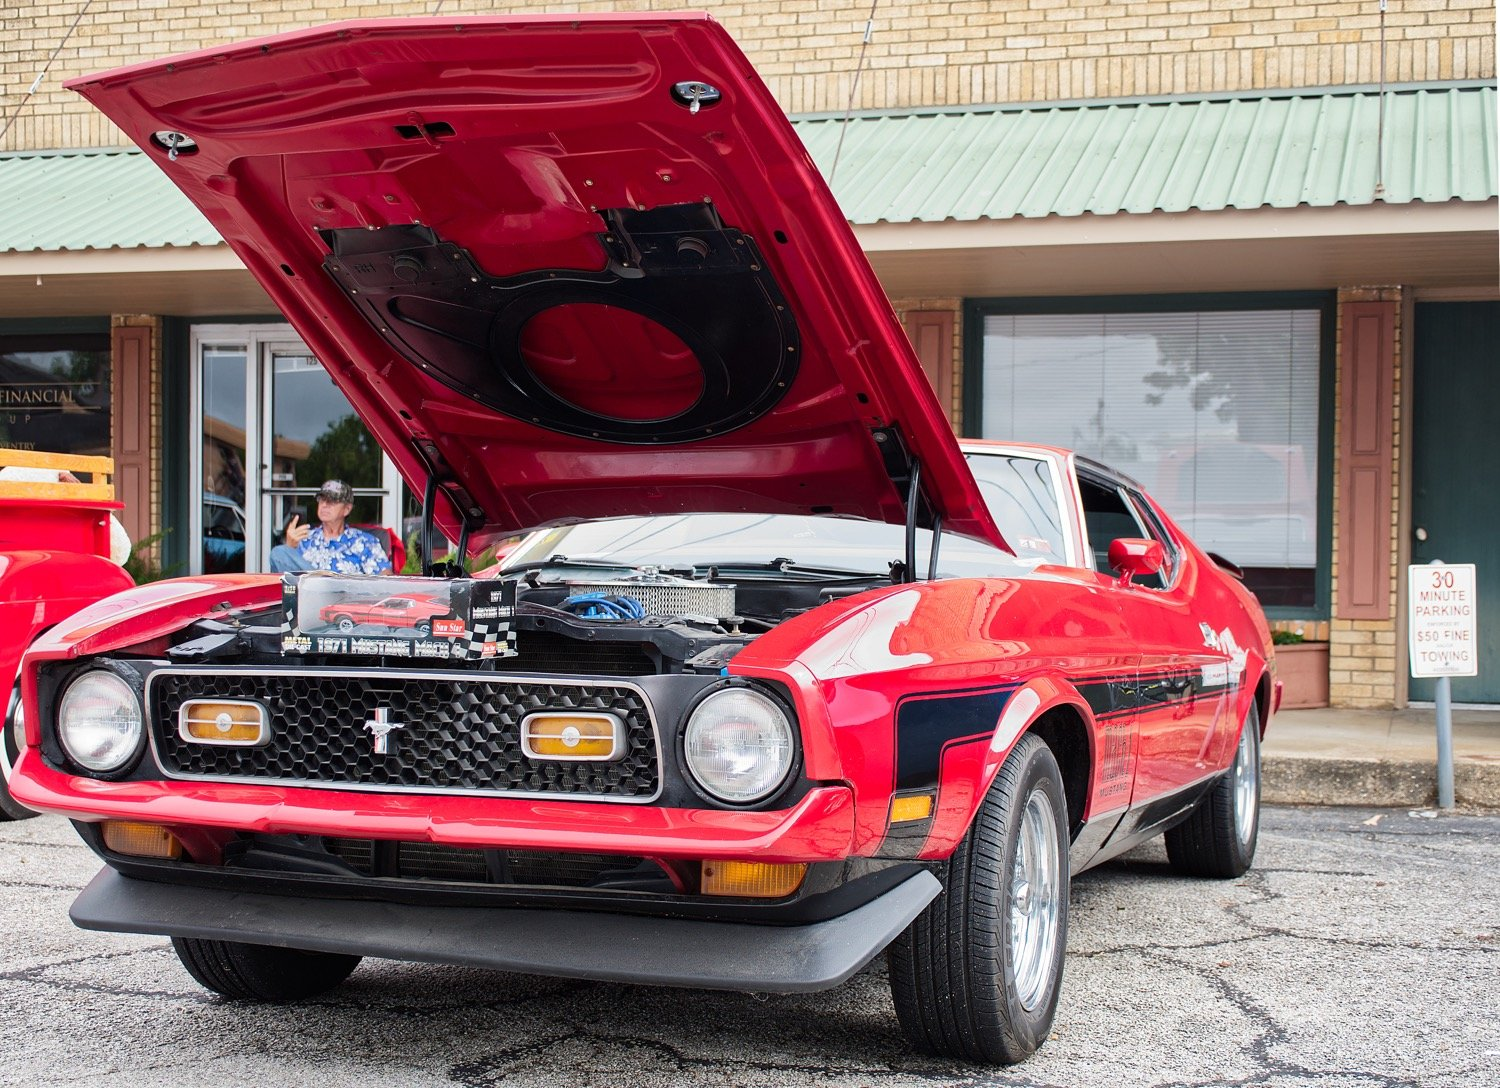 Among the various Ford models was this 1971 Mustang Mach 1, along with its miniature scaled down replica.